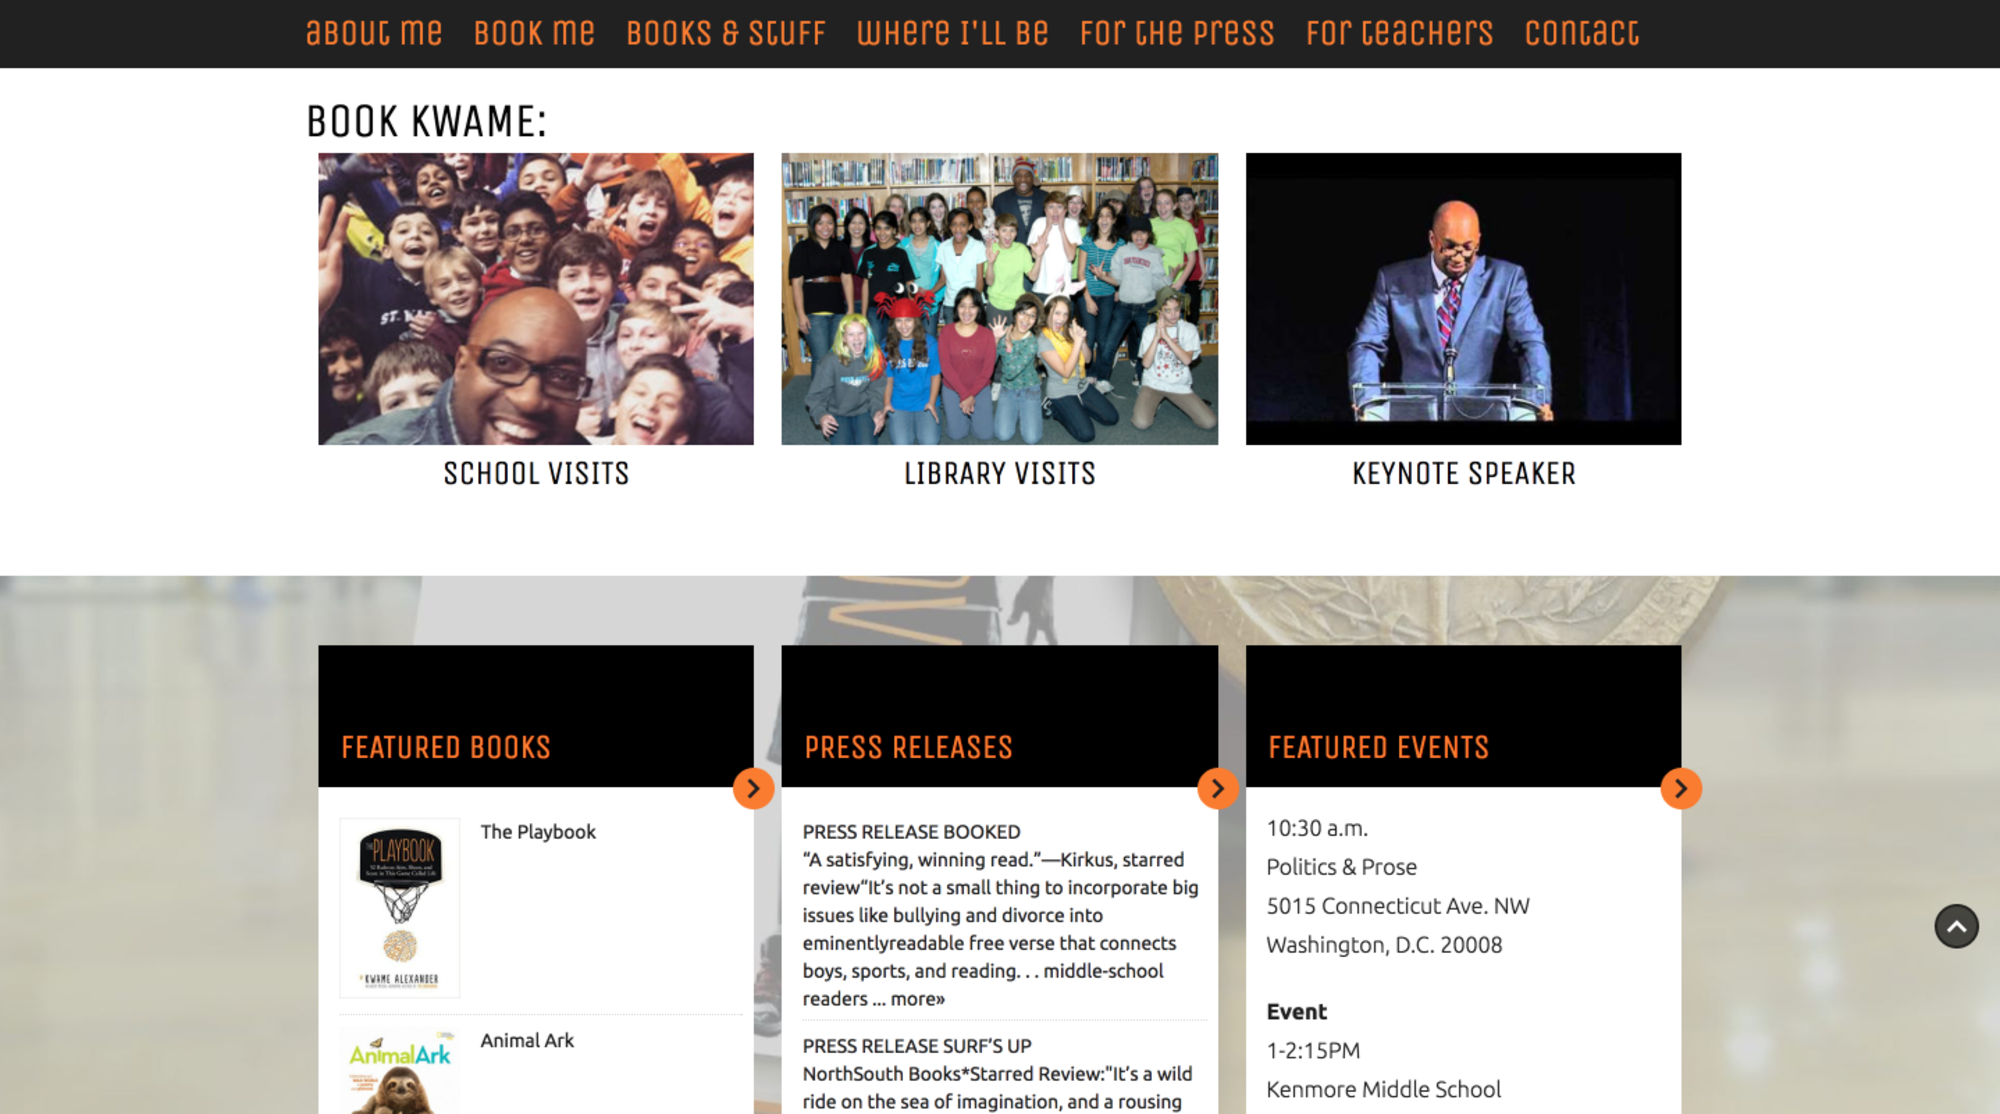 kwame alexander homepage scroll further down